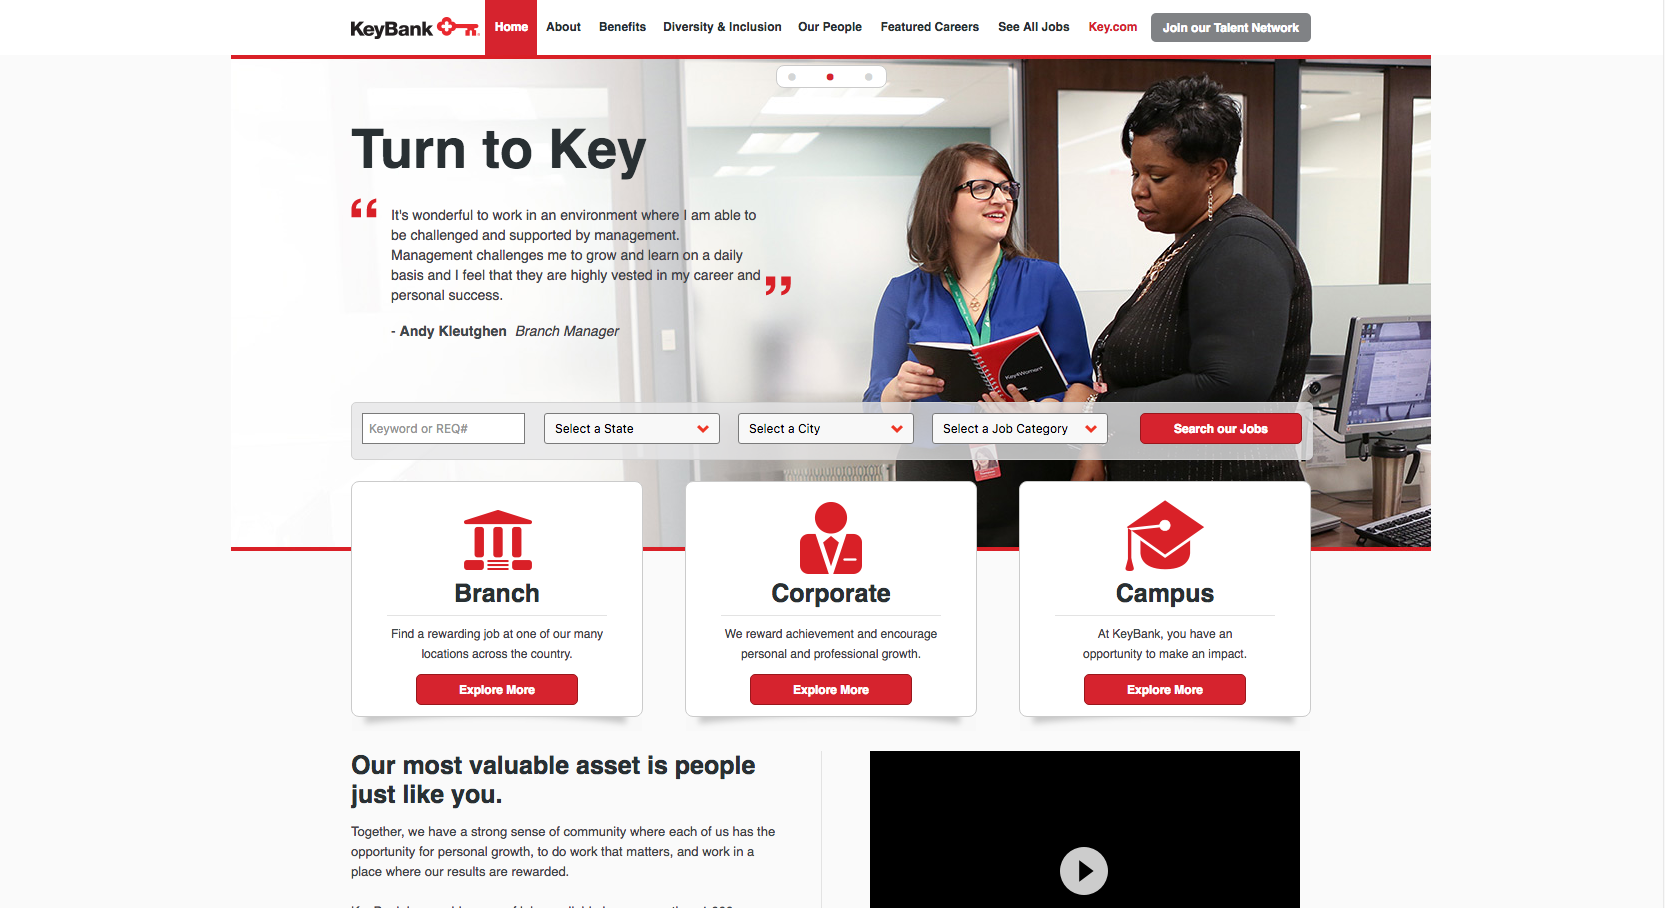 talent network optimizes candidate pipeline careerbuilder for keybank